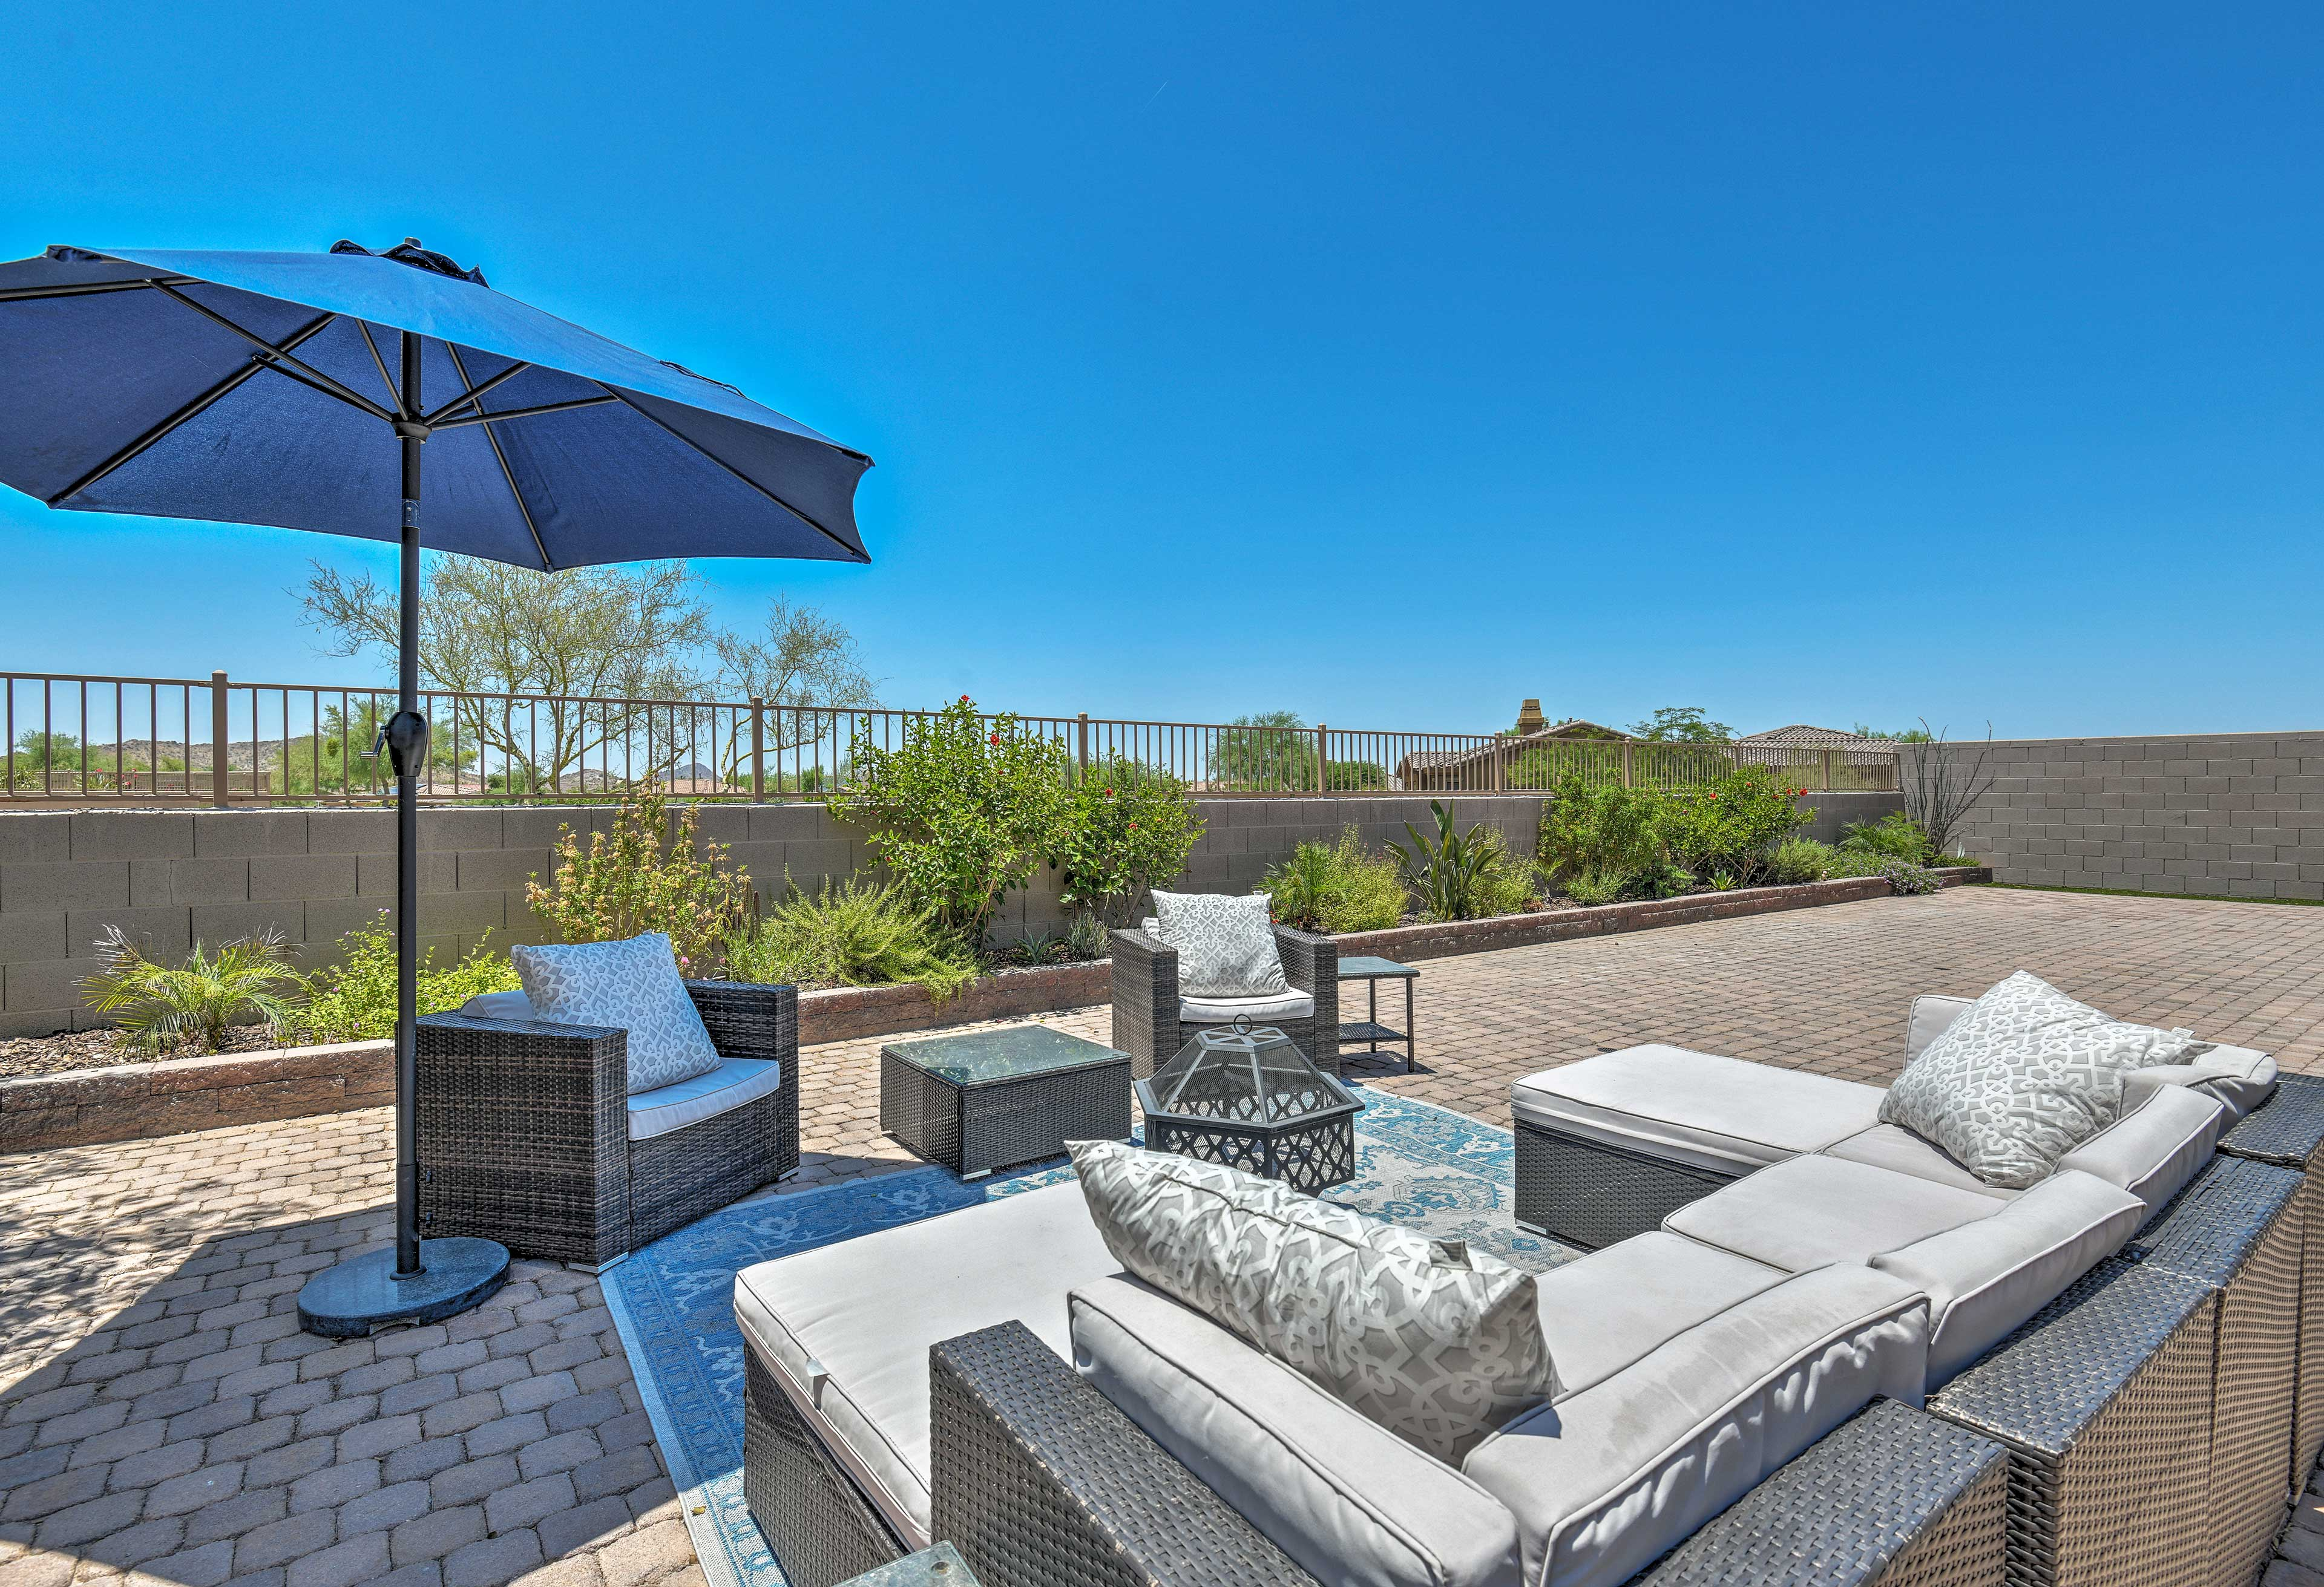 The furnished backyard is sure to be a crowd favorite.